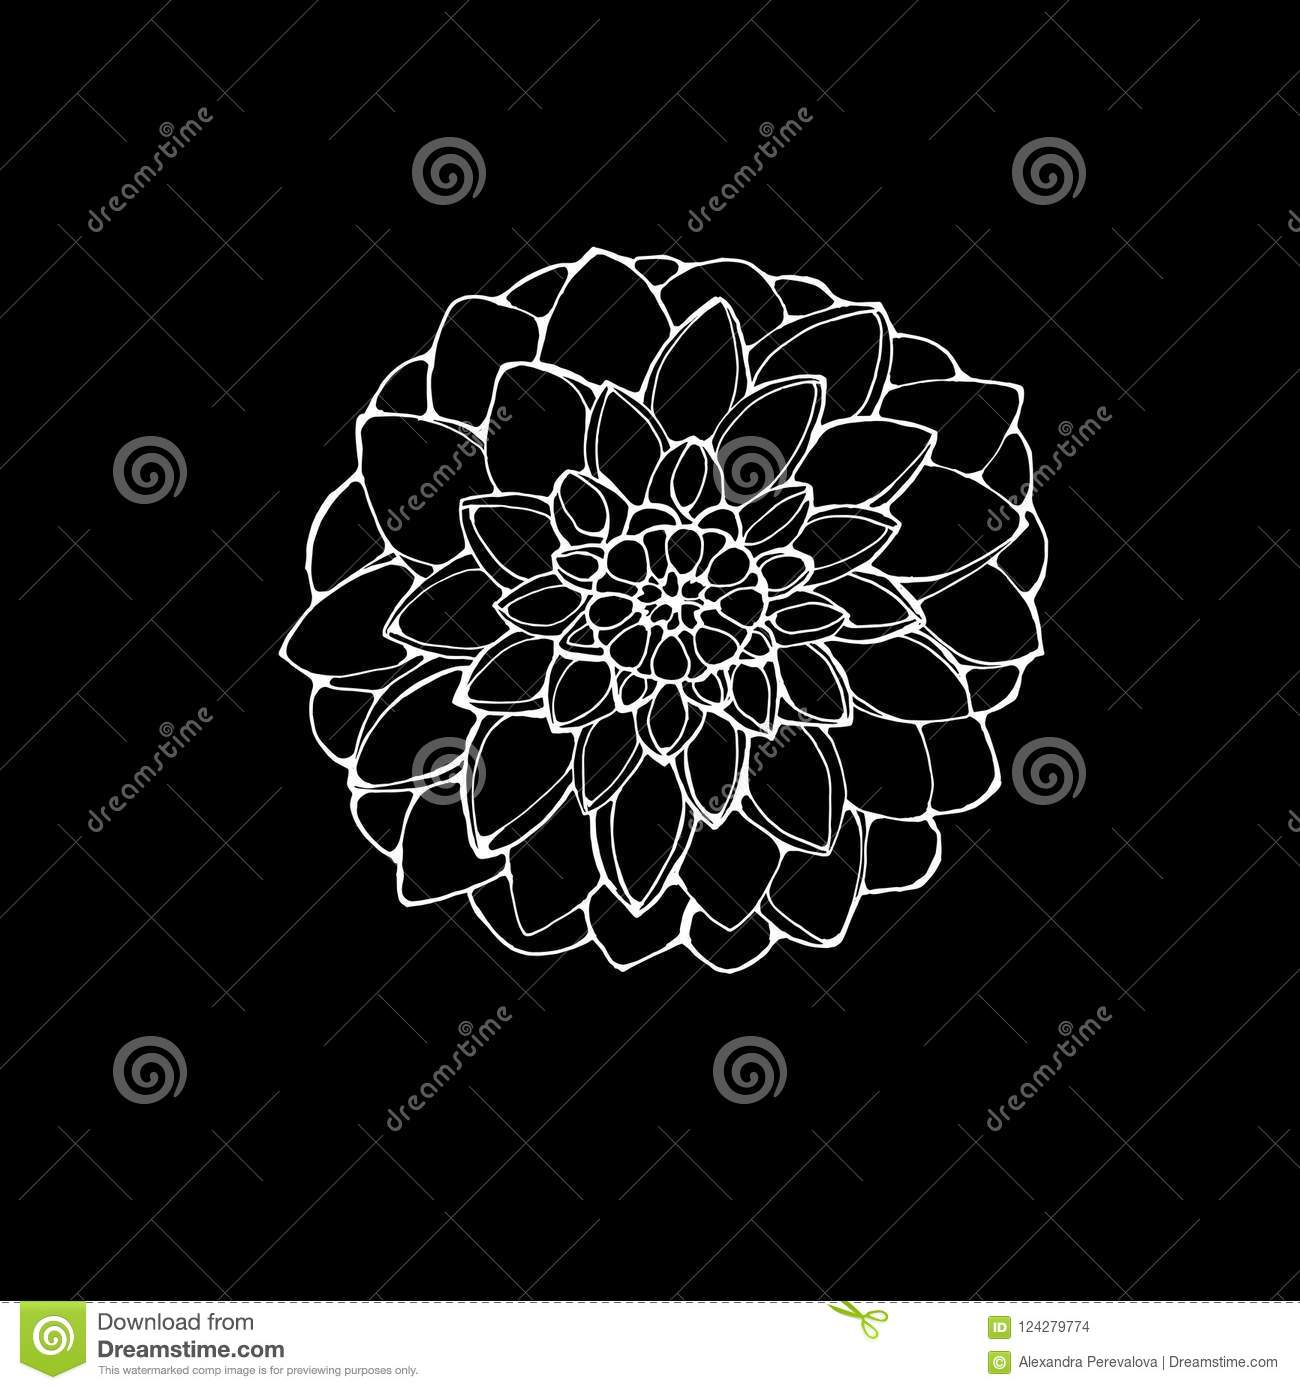 Black And White Picture Of A Dahlia Flower The Idea For A Tattoo